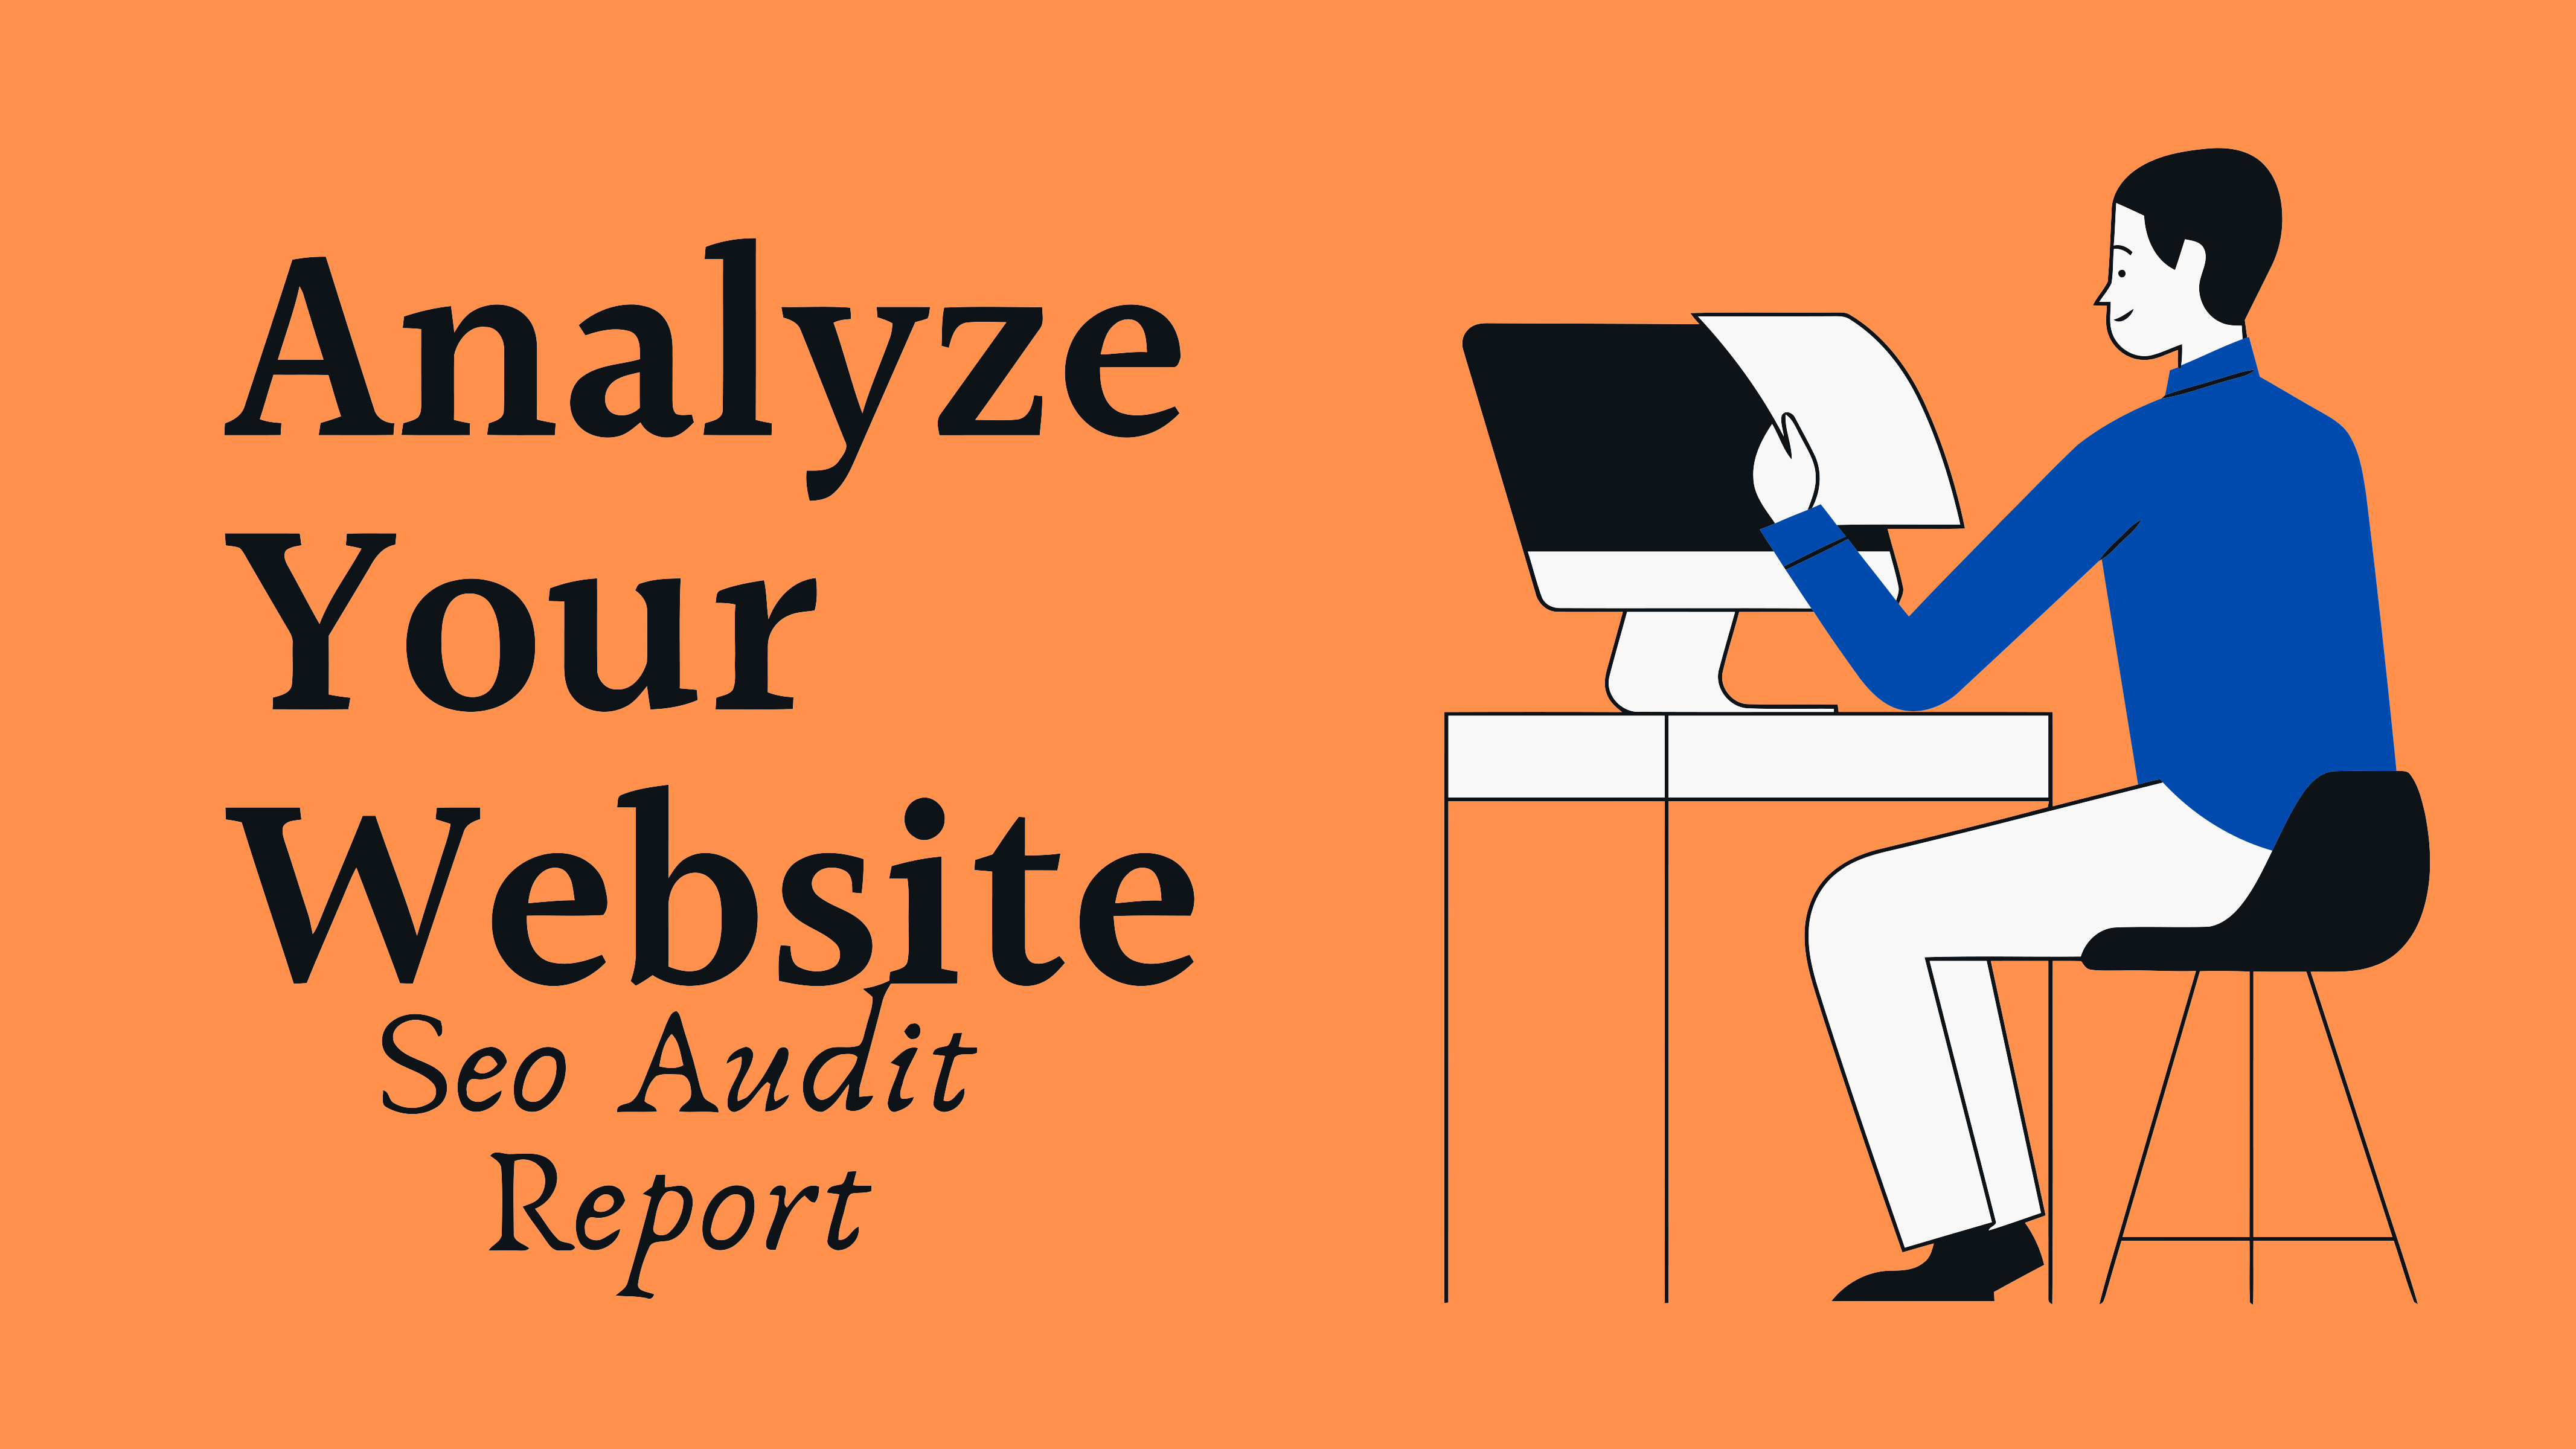 I will analyze your website within 24 hours